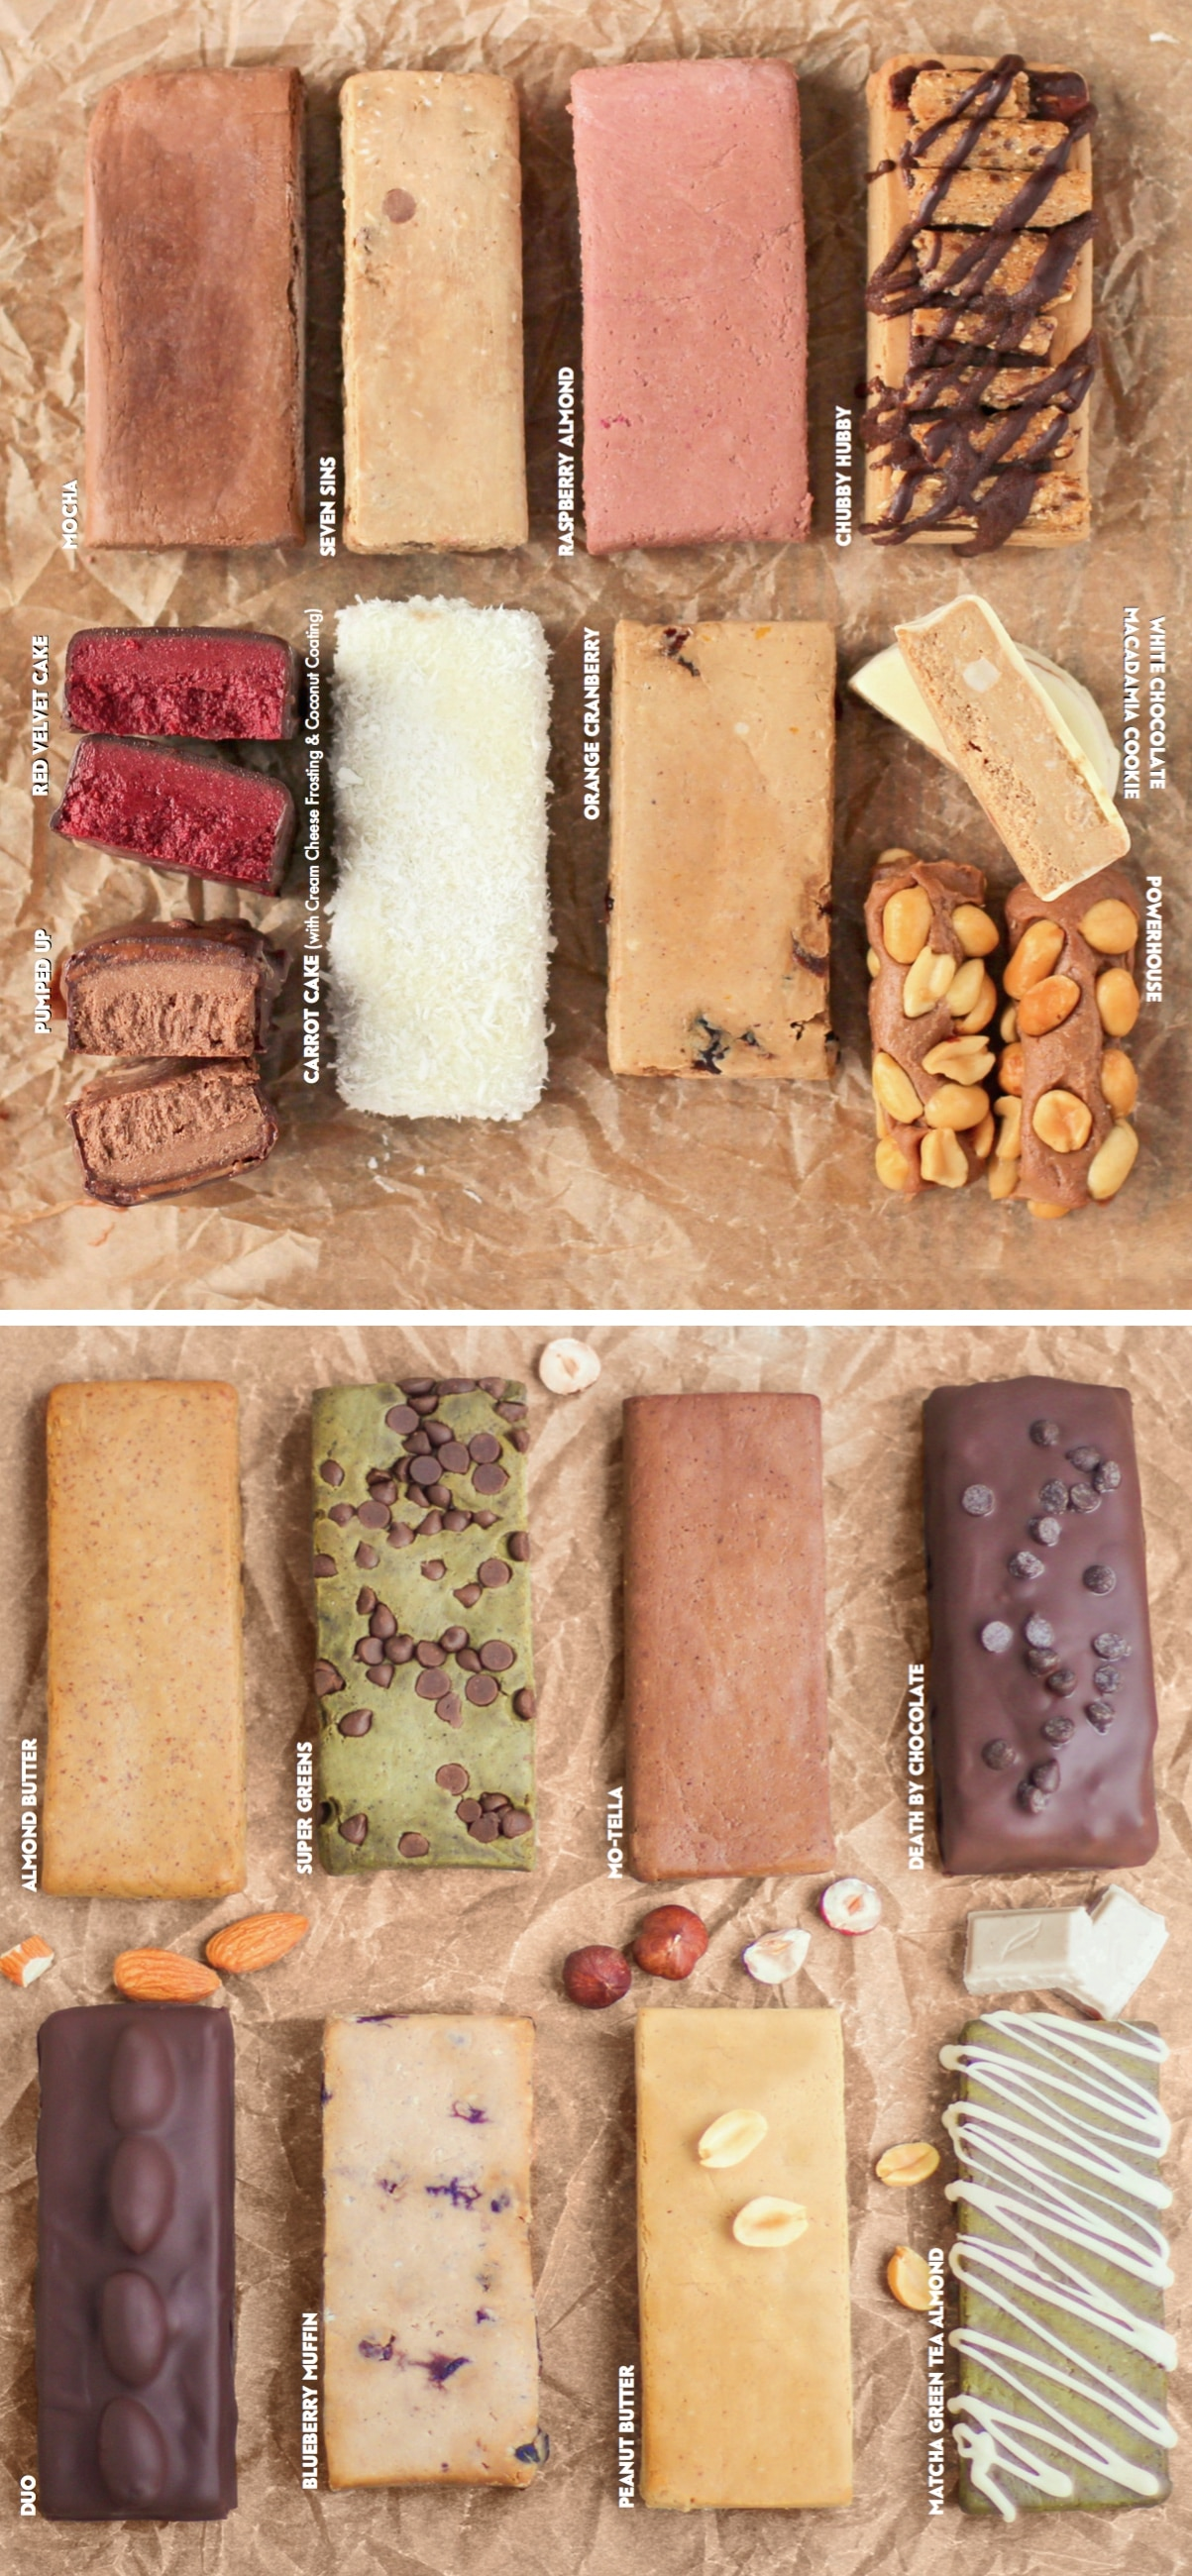 A sneak preview of inside the DIY Protein Bars Cookbook! Authored by Jessica Stier of Desserts with Benefits